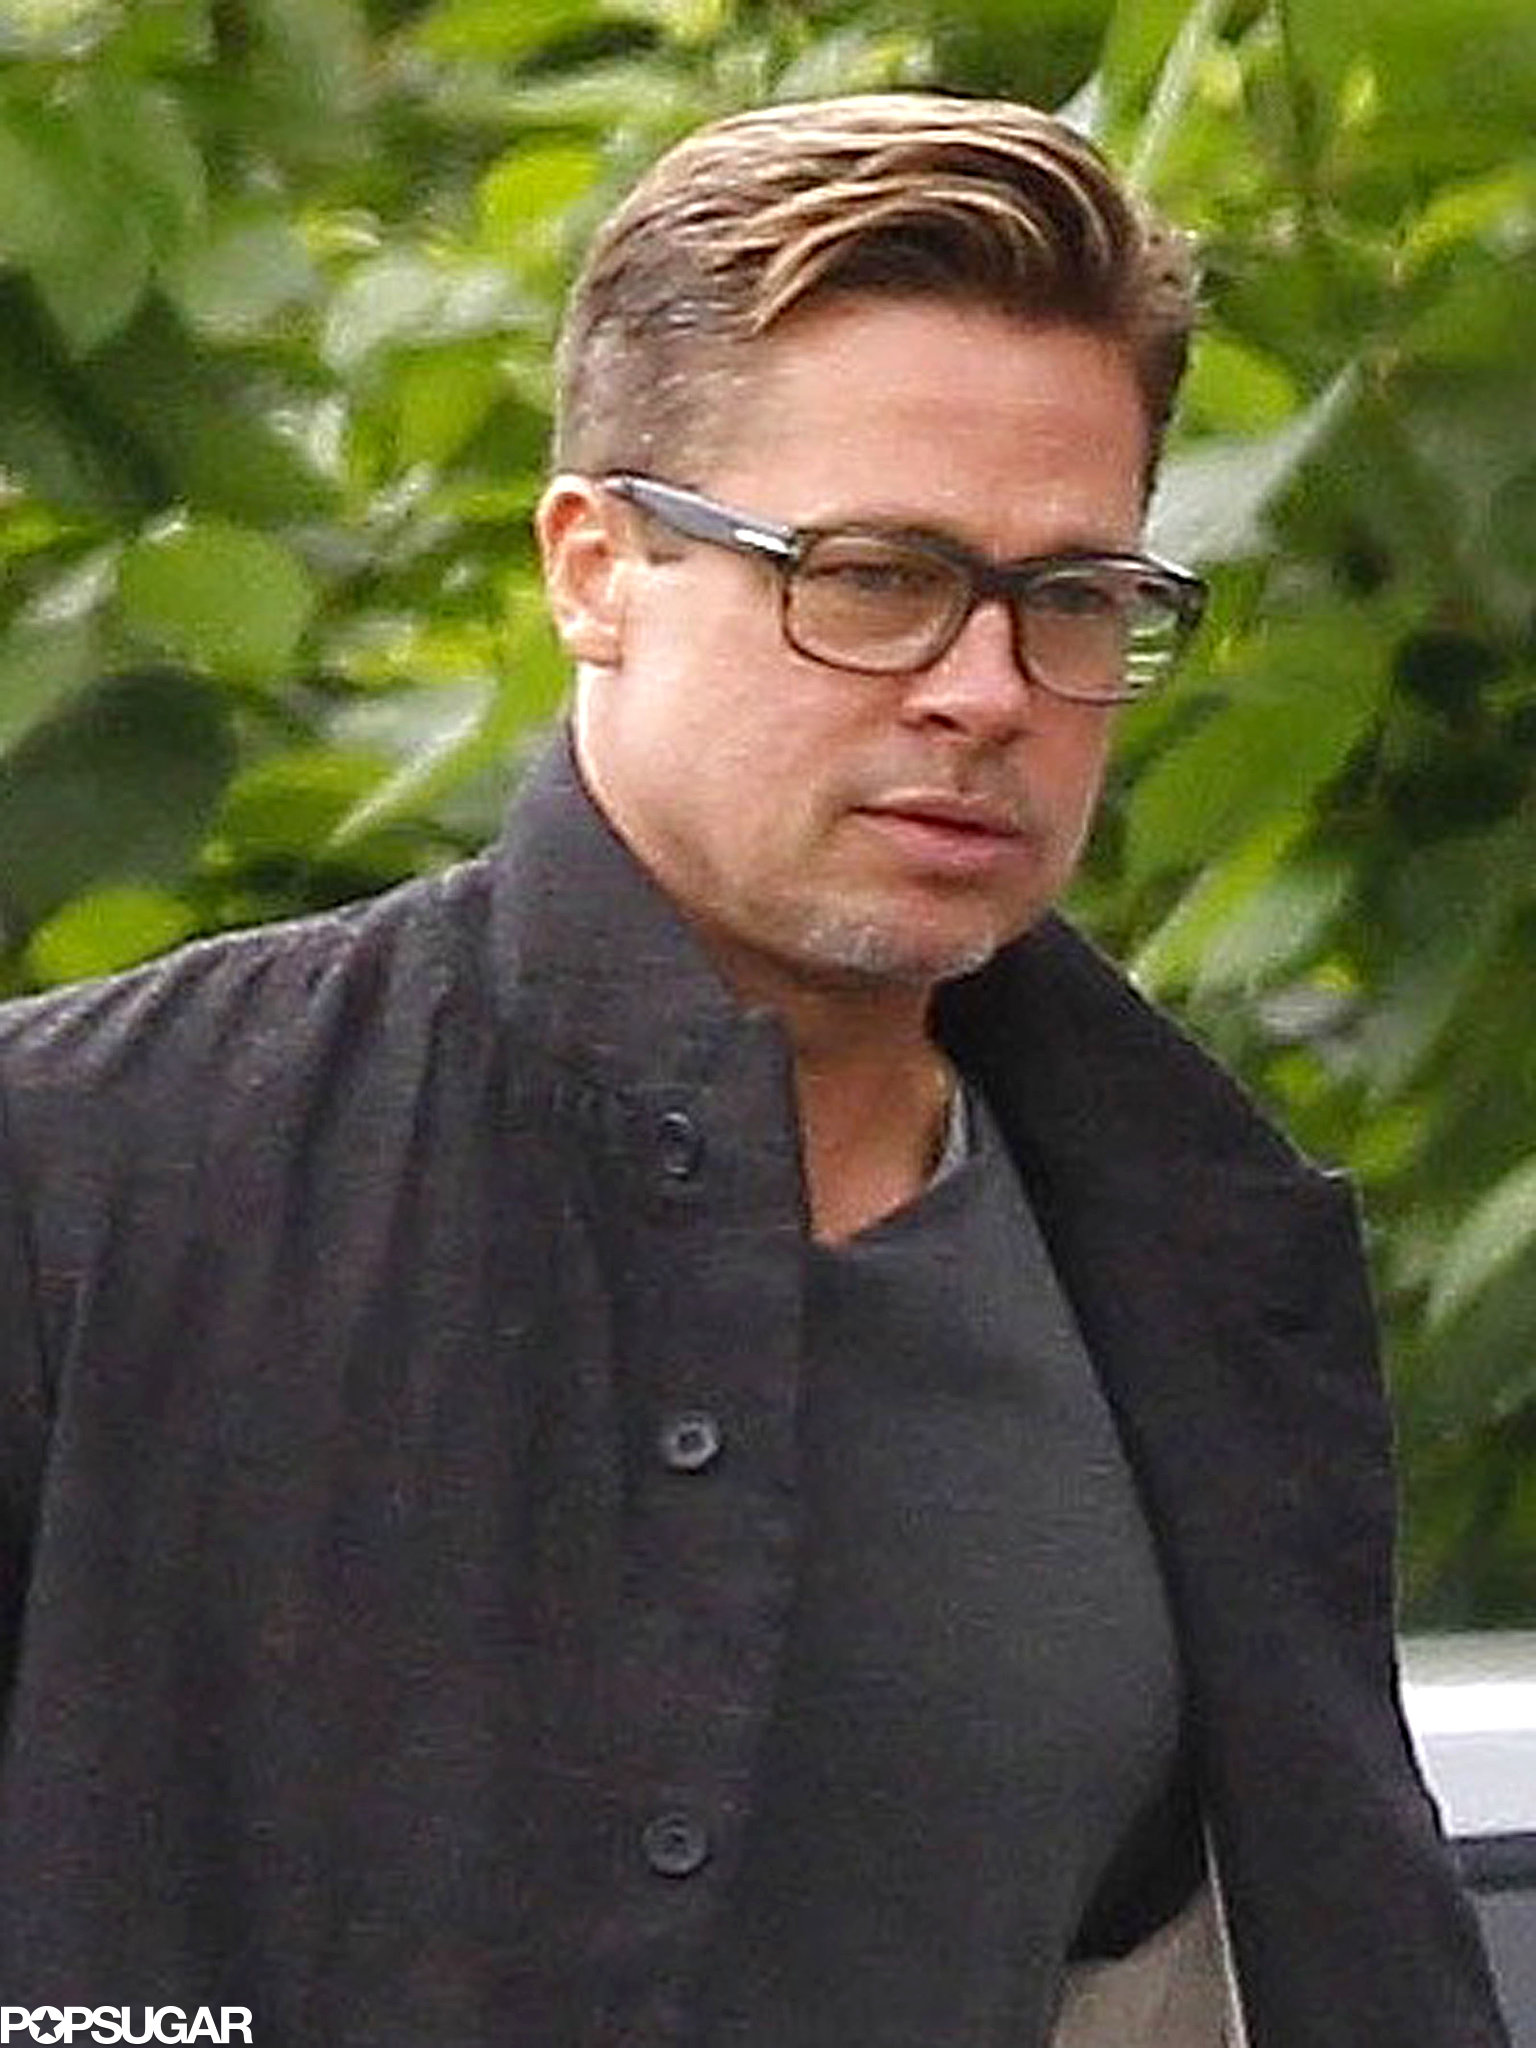 Brad Pitt Is Seriously Sexy With Short Hair!